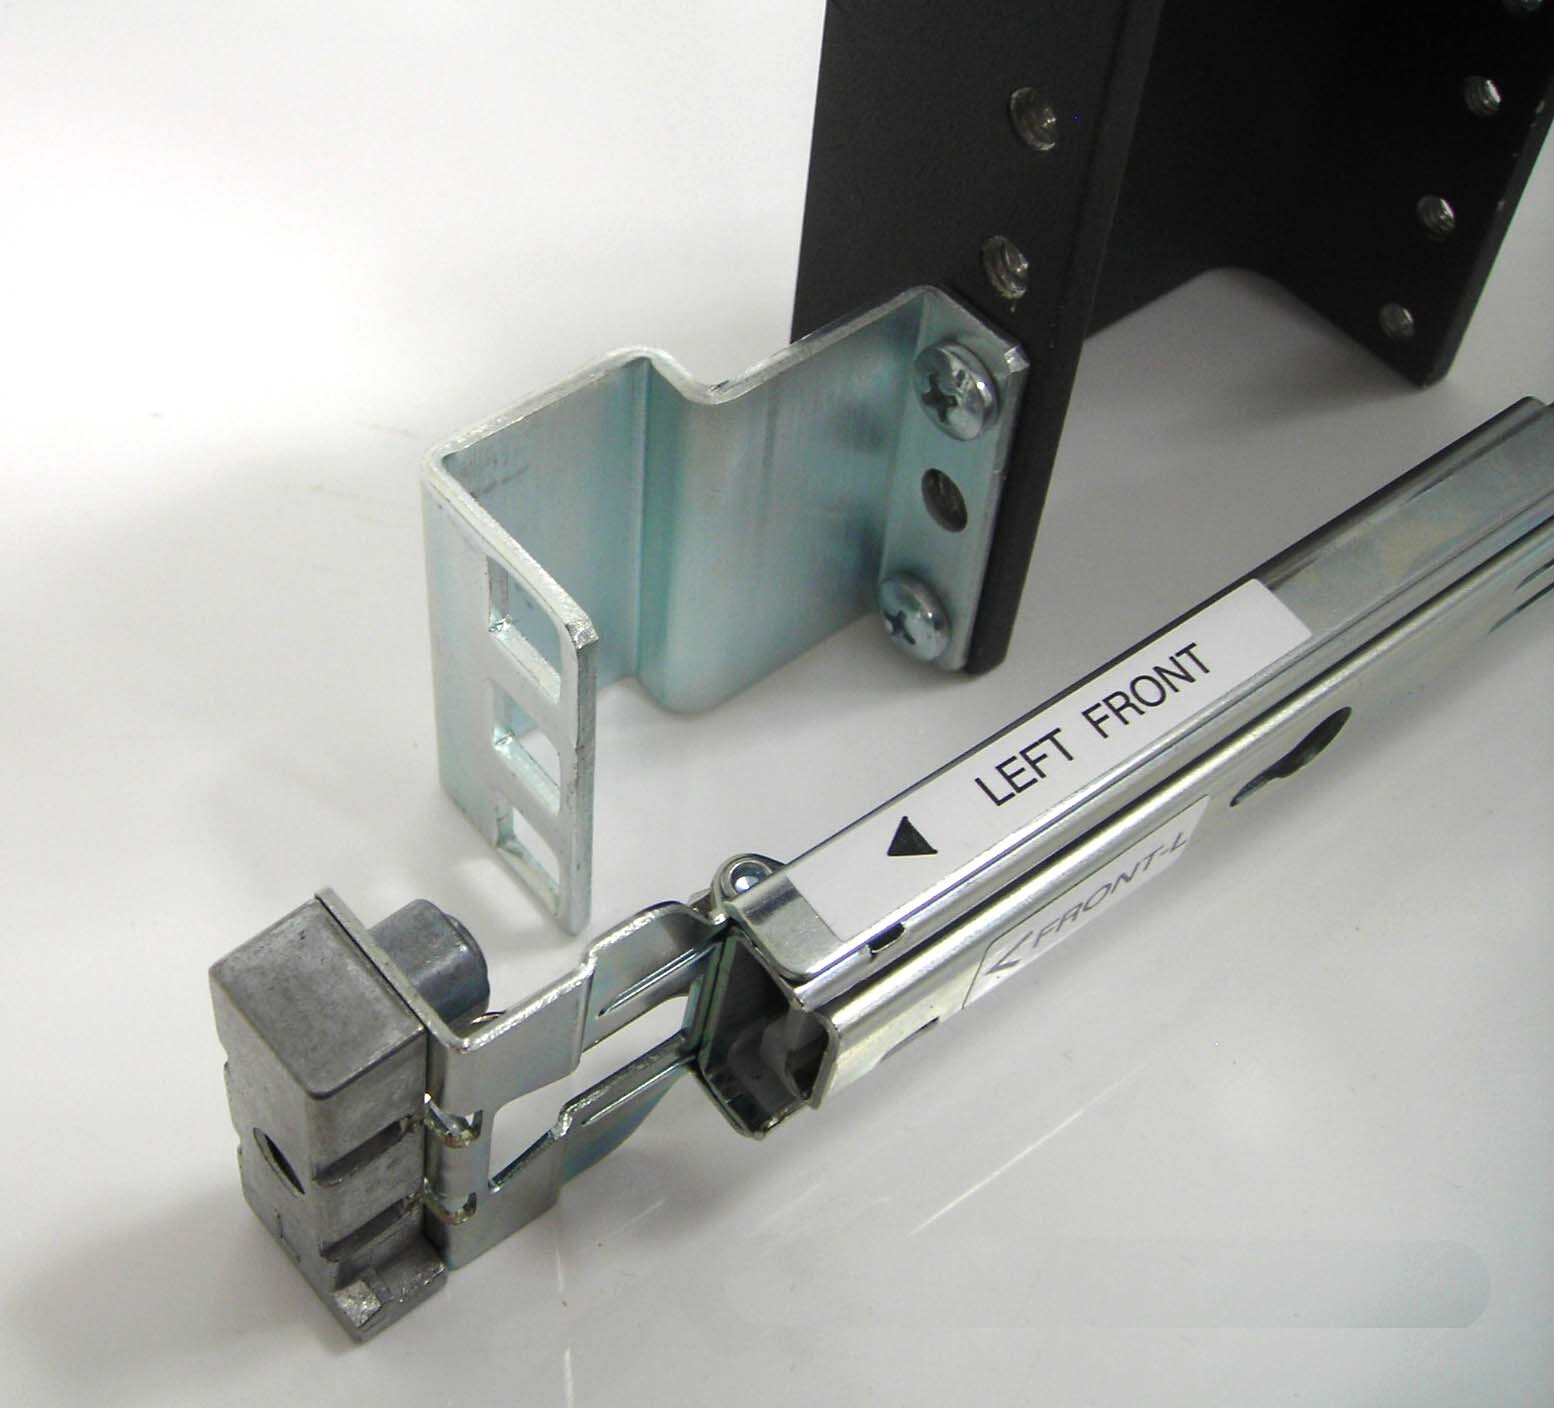 Mounting Cisco Ucs Slide Rails In A Threaded Hole Rack